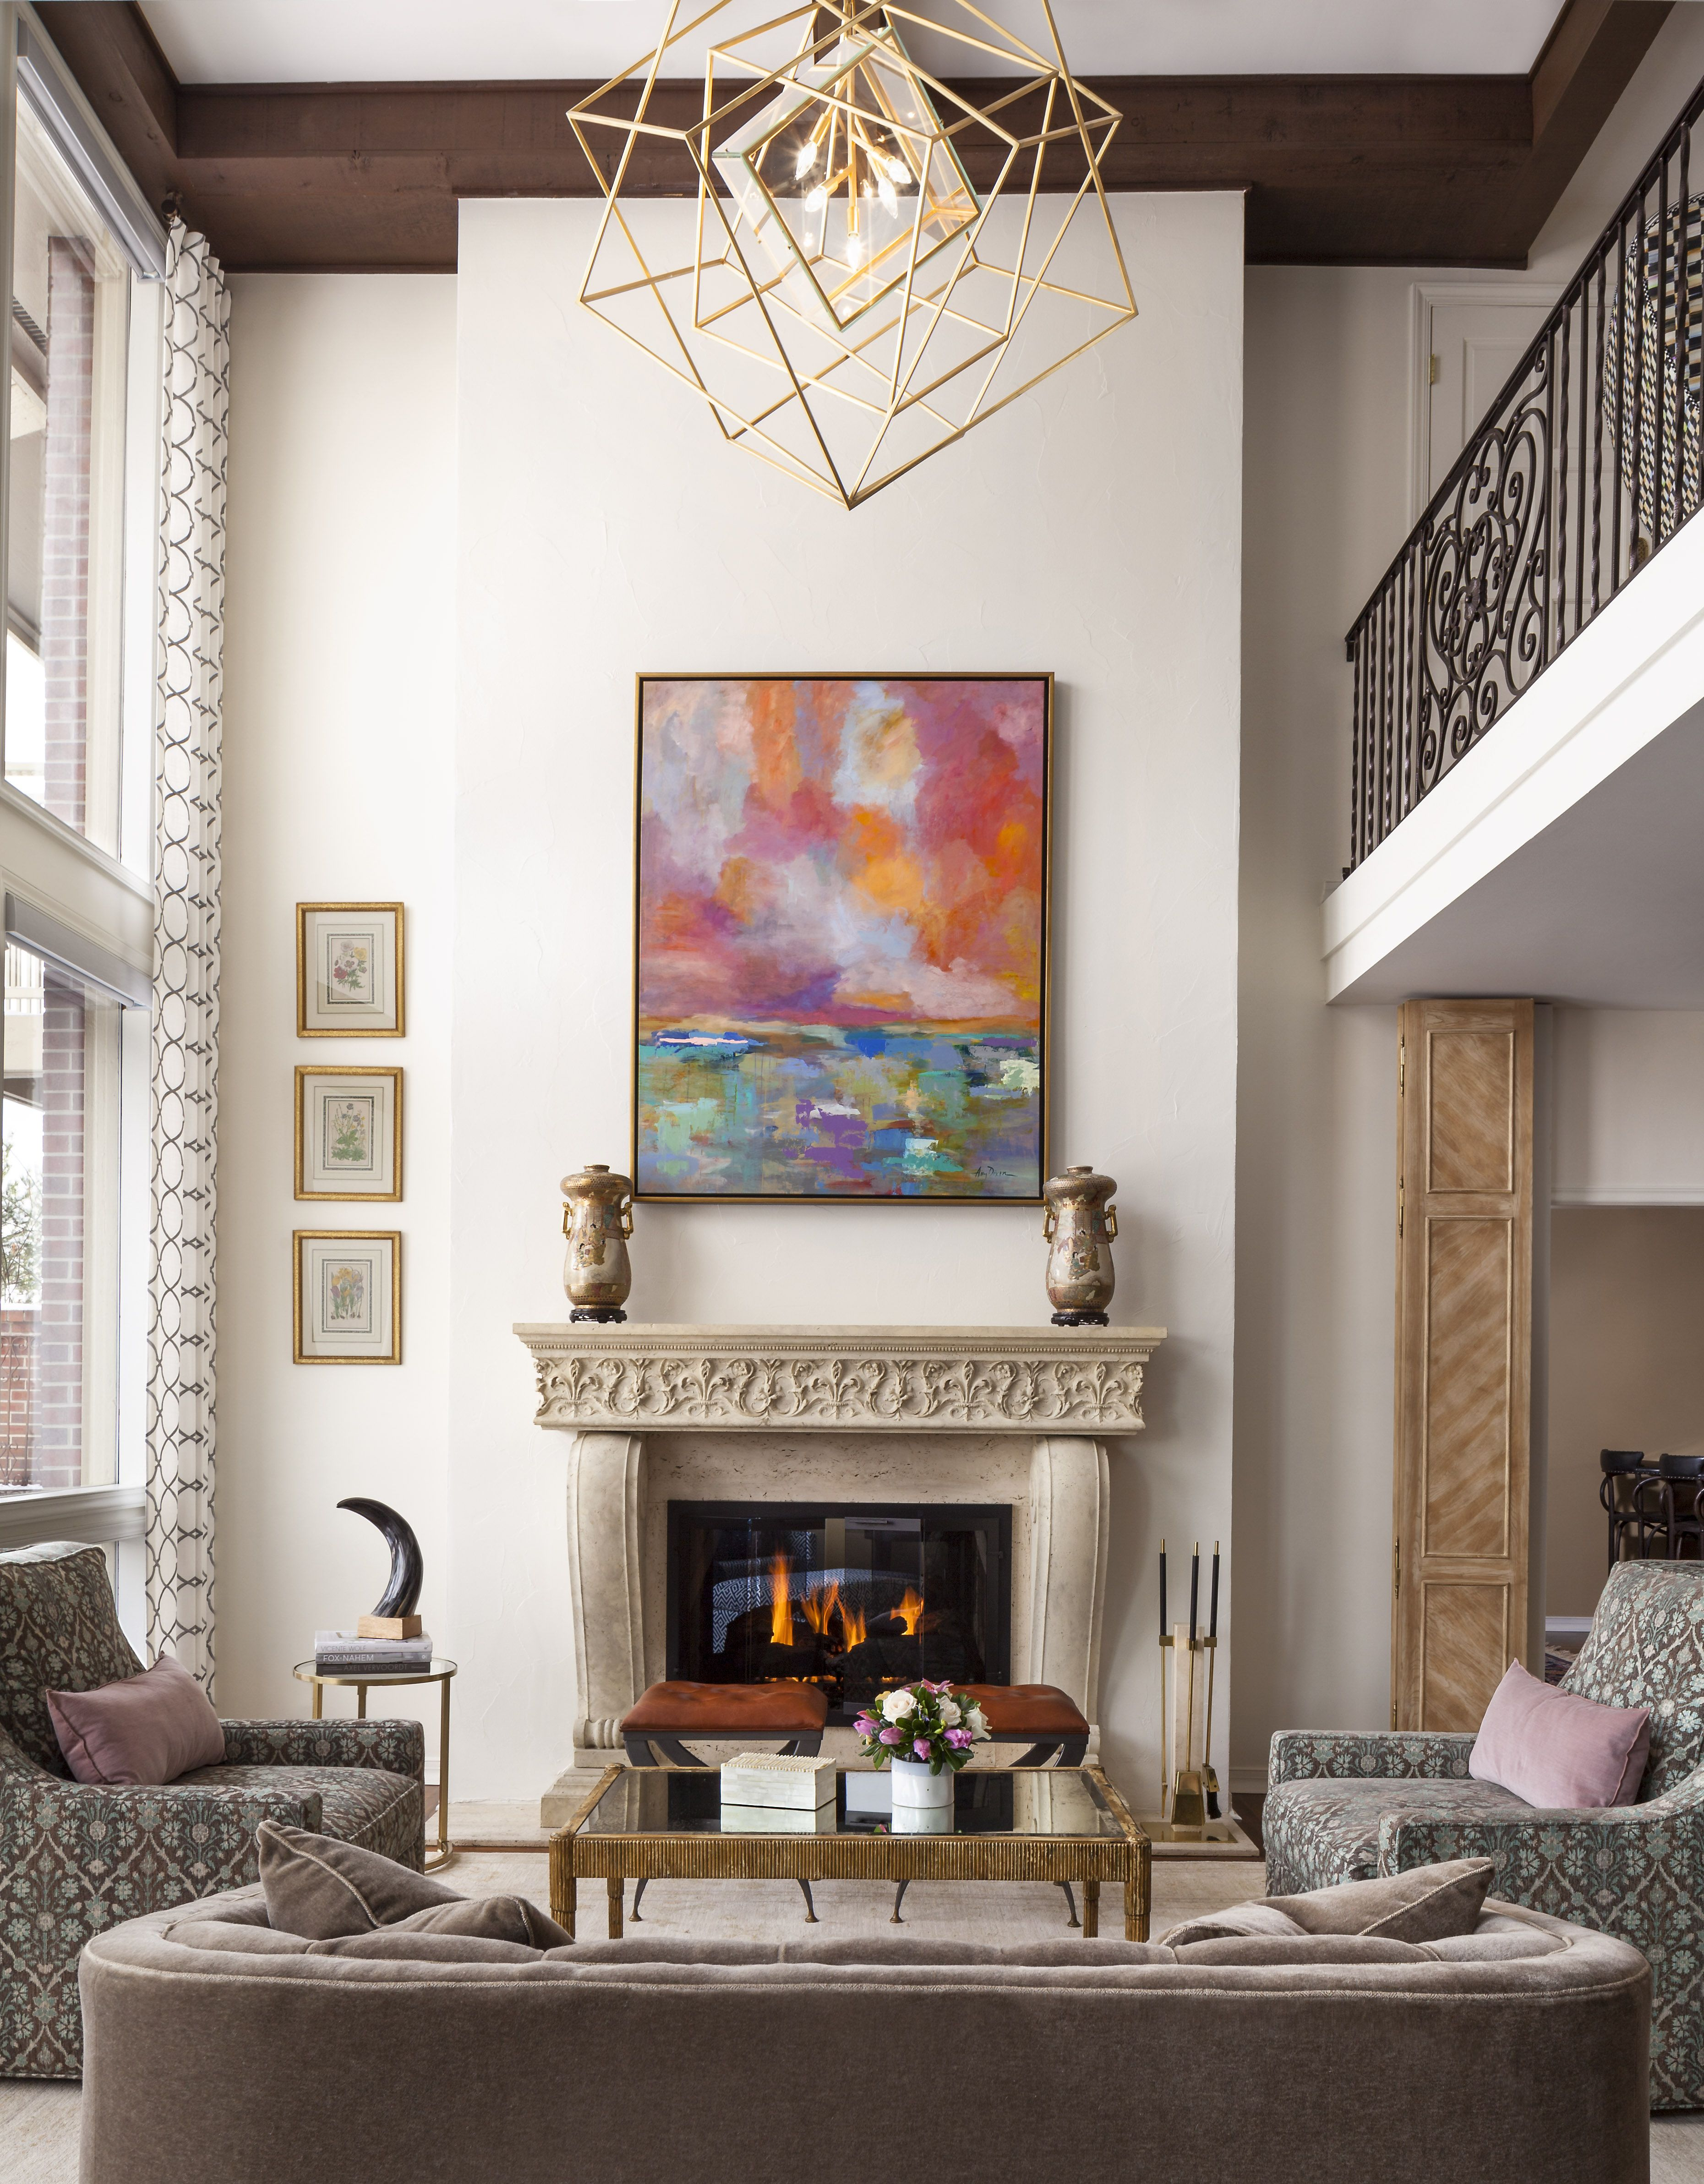 French Moire Living Room An Eclectic And Transitional Living Room With Pops Of Color Through Art And A Transitional Living Rooms Luxury Interior Design Home